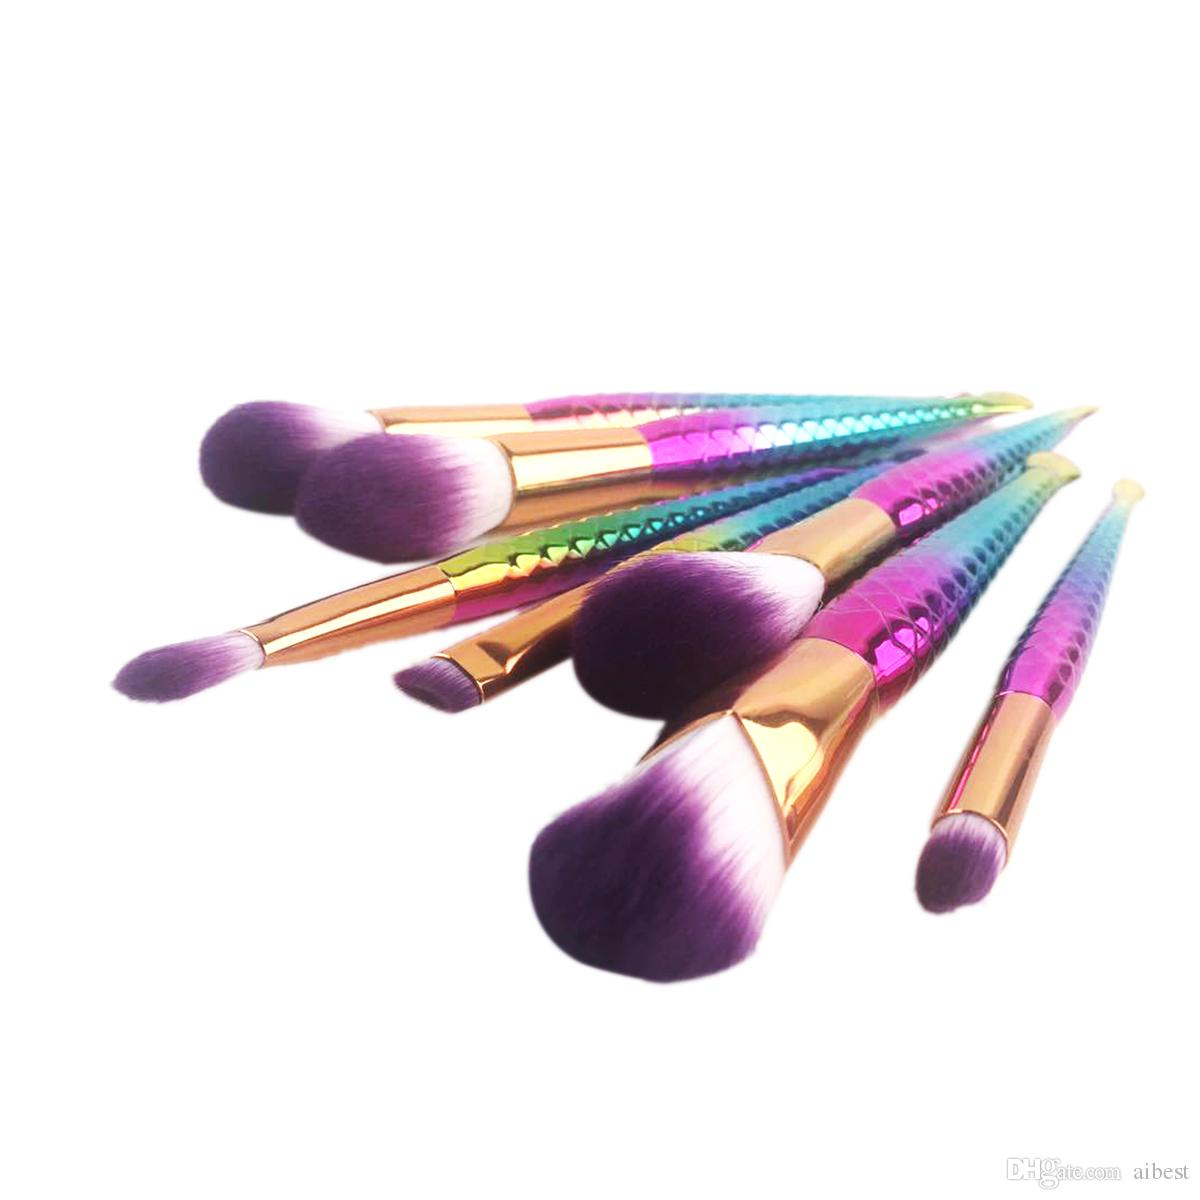 Mermaid Makeup Brushes for Foundation Powder Contour Fish Scales Multipurpose Beauty Rainbow Cosmetic Makeup Brush Sets